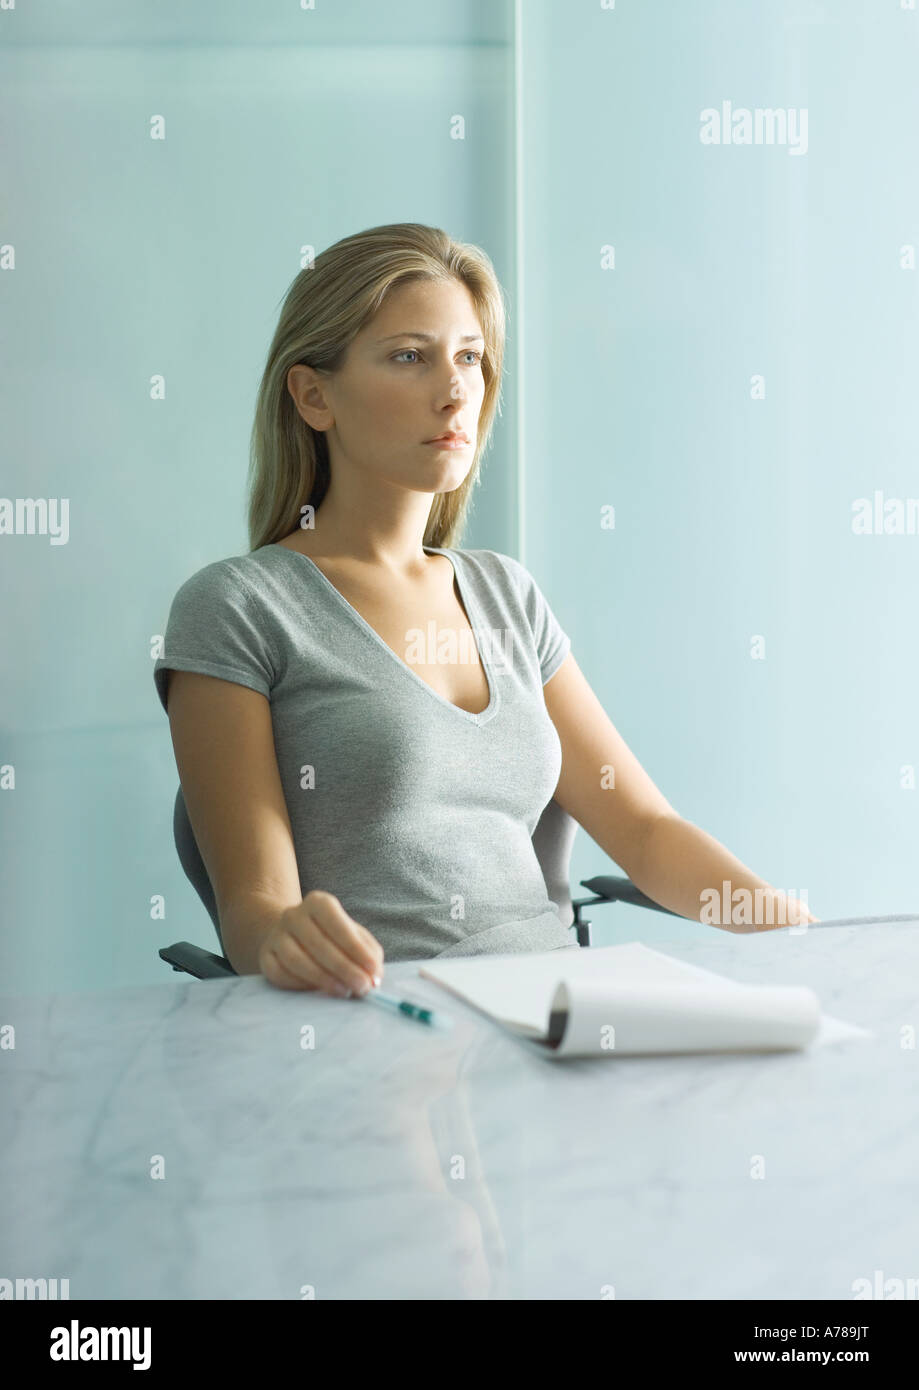 Woman sitting at table with pad of paper, pen and bottle of water, looking down - Stock Image